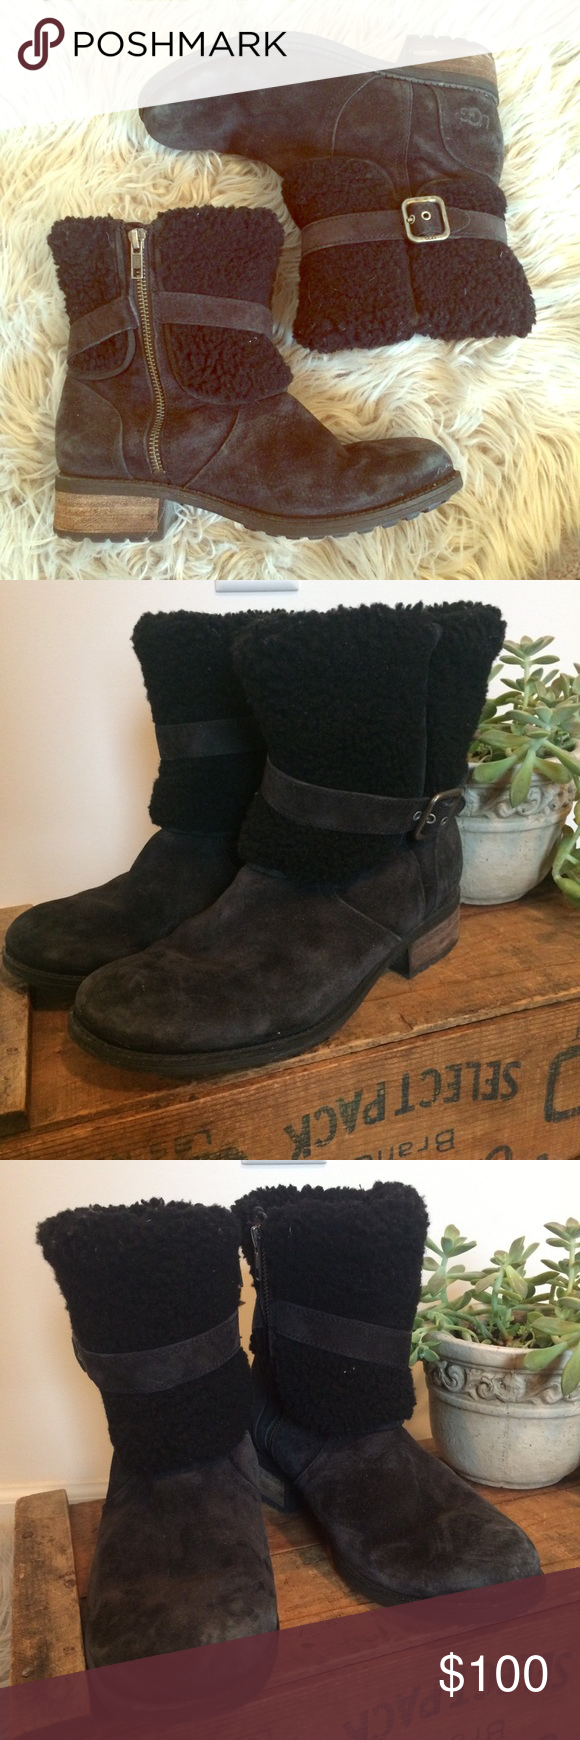 a28a924ffea Ugg Blayre II Fold Over Cuff Suede Boots These gently worn boots are ...